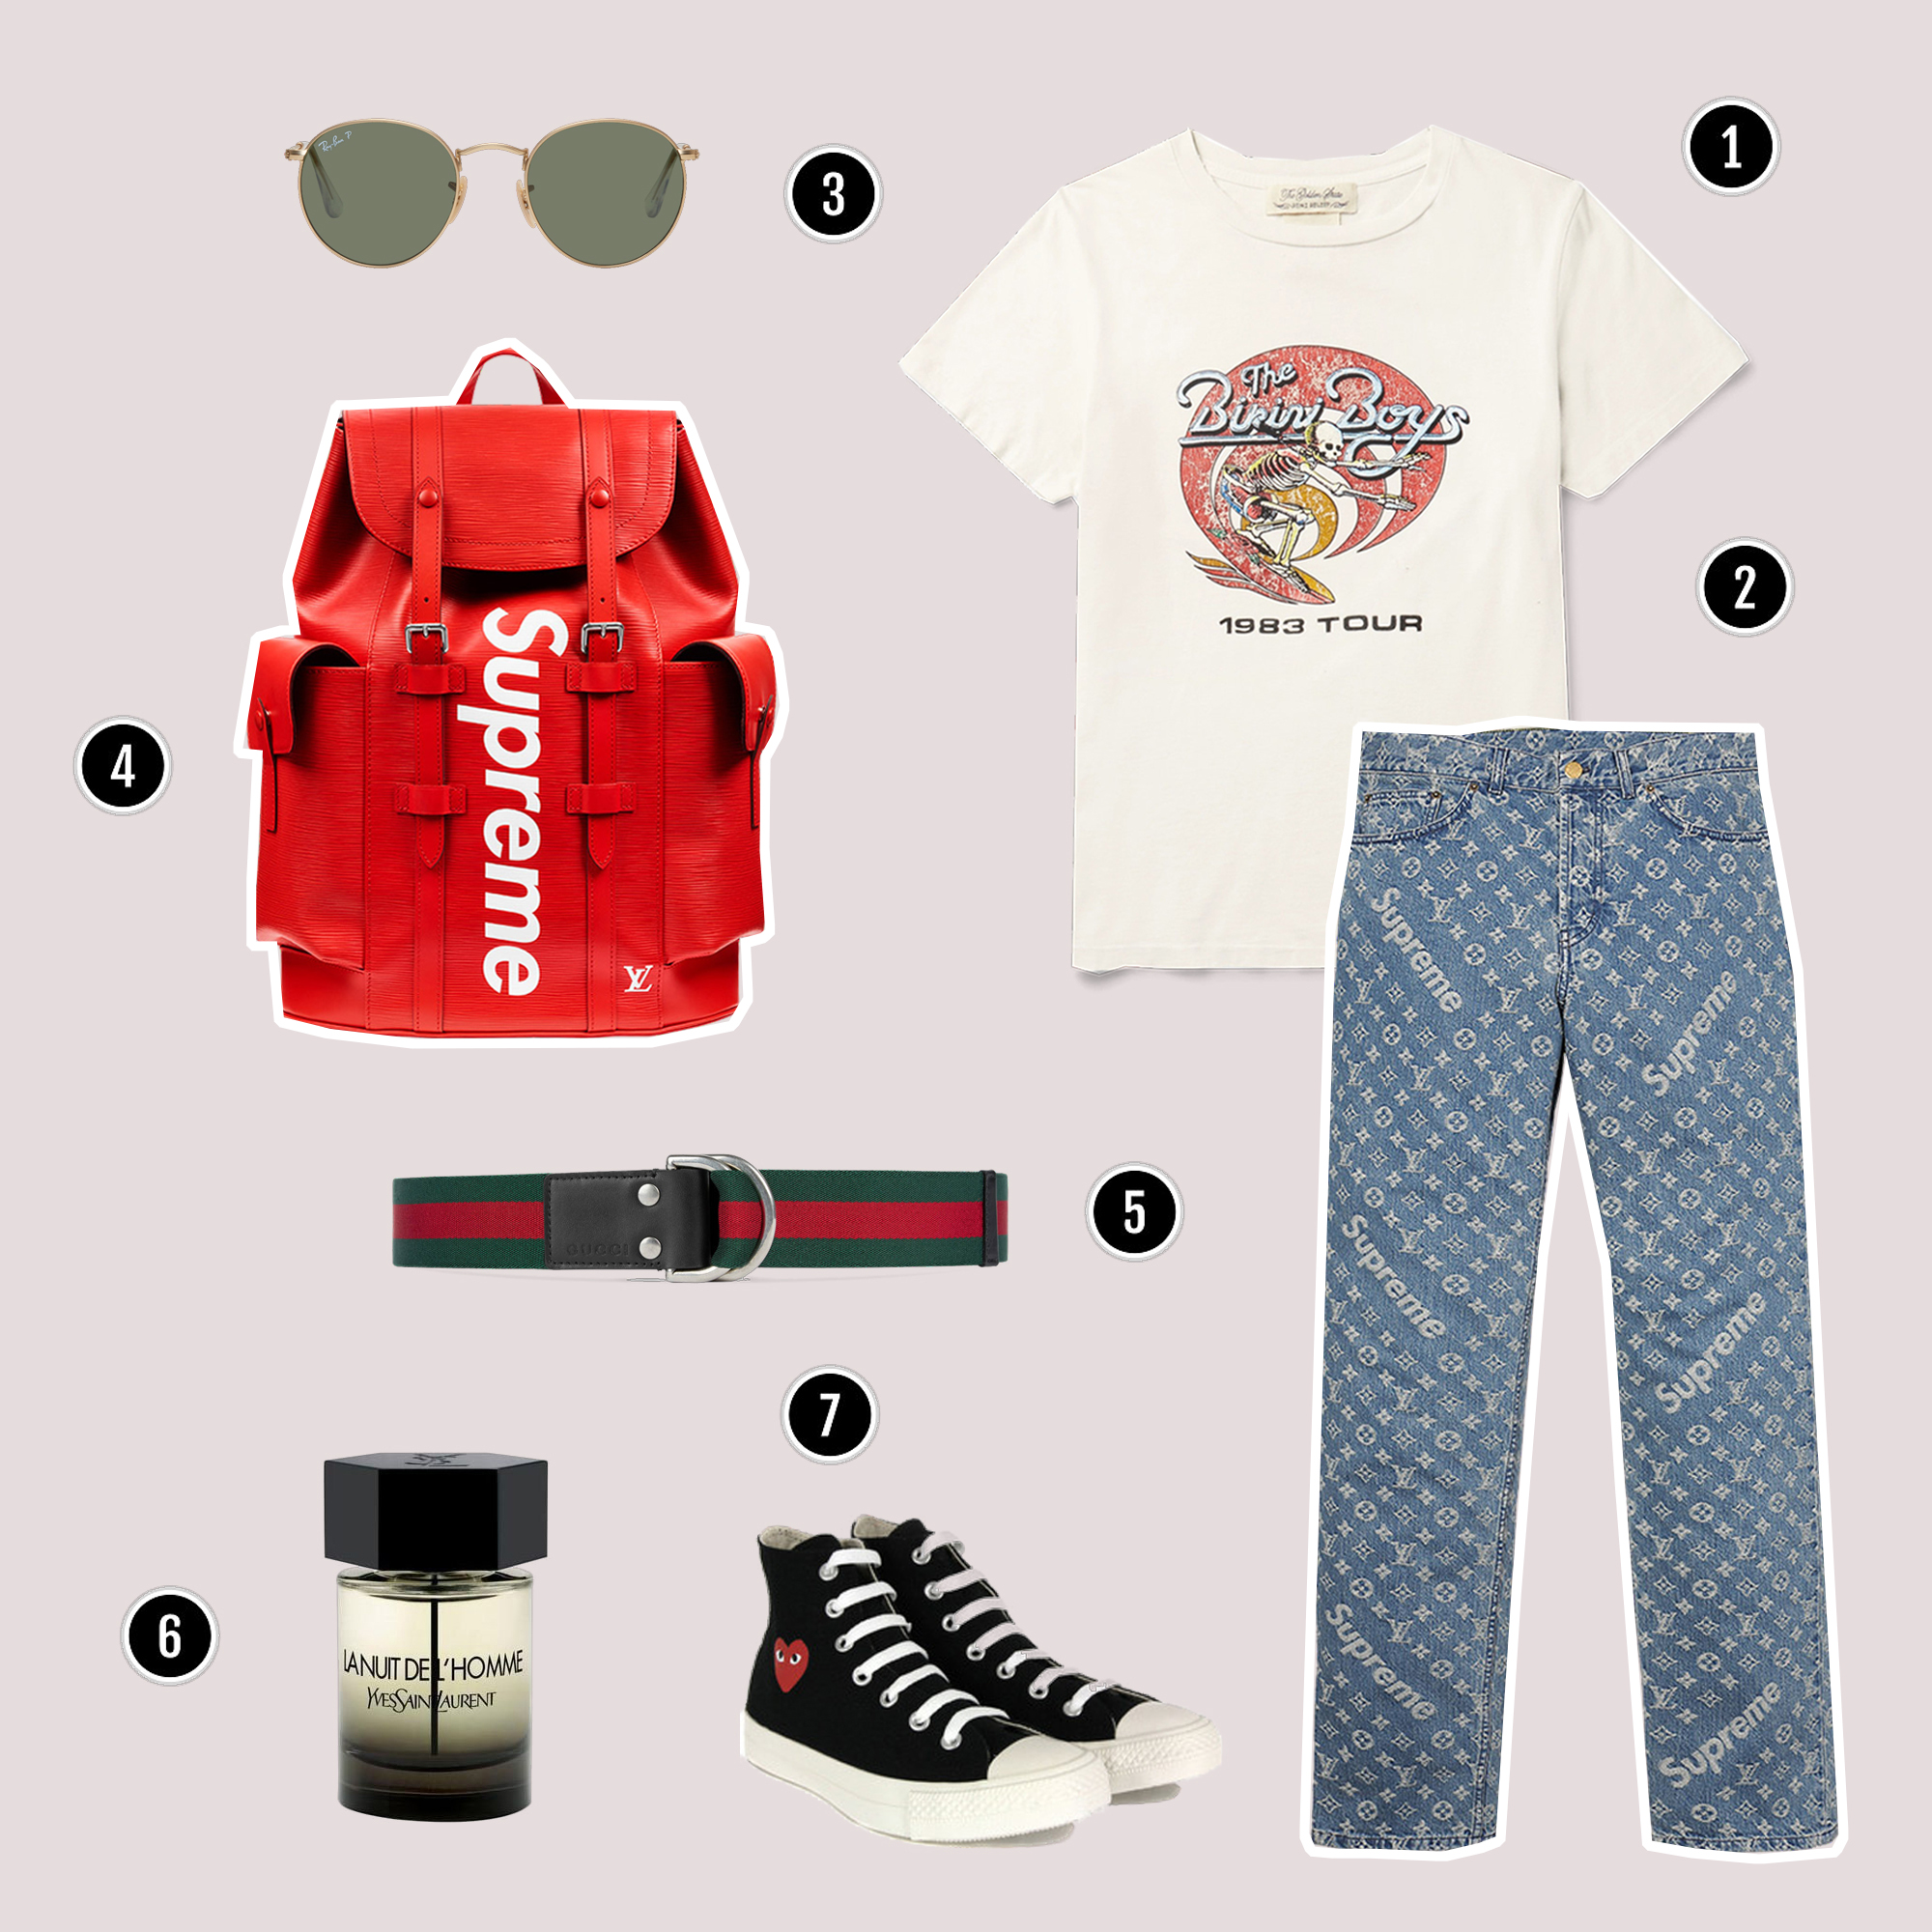 1.Áo thun : REMI RELIEF / 2.Quần : Louis Vuitton x Supreme / 3.Kính : Rayban / 4.Túi backpack : Louis Vuitton x Supreme/ 5.Nịch : Gucci / 6.Nước hoa : Yves Saint Laurent / 7.Sneakers : Comme Des Garcon